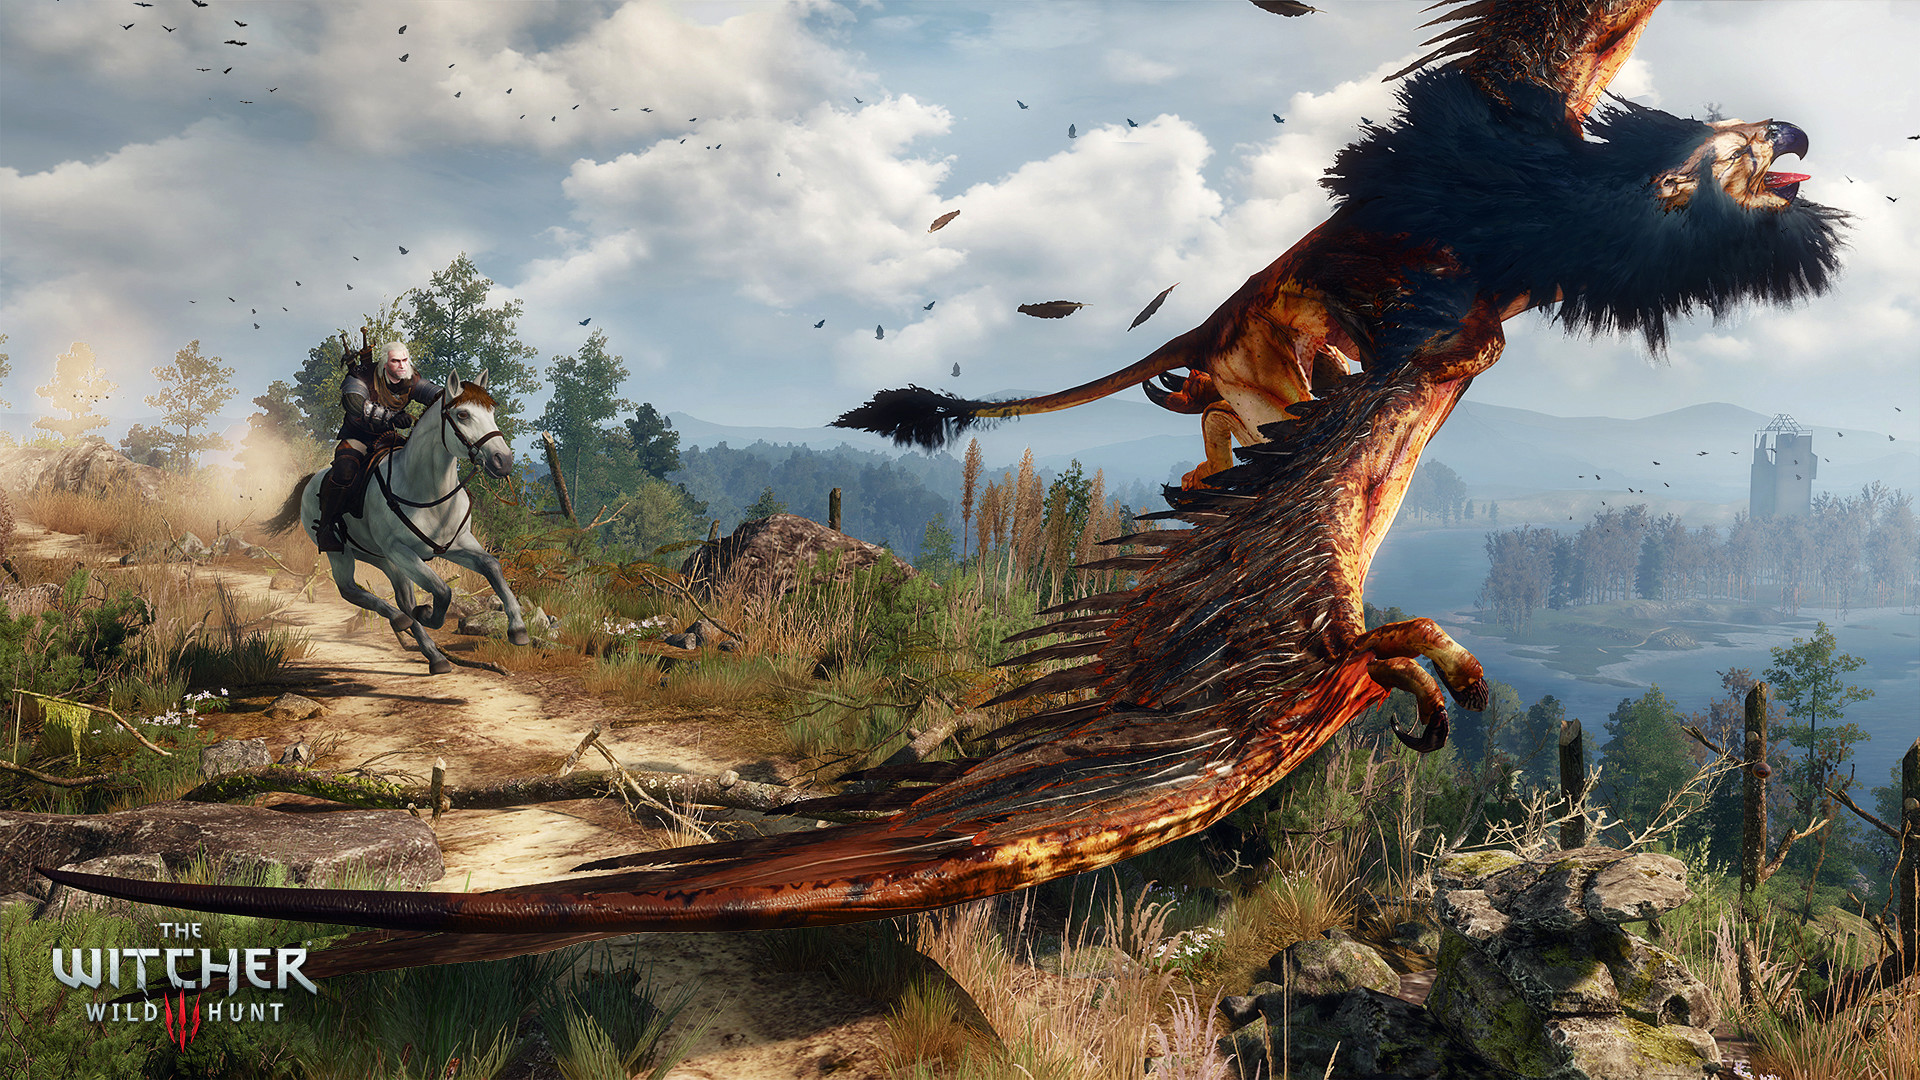 The Witcher 3 Wild Hunt ESPAÑOL PC Full + 16 DLC + Update v1.10 + Hearts Of Stone DLC + REPACK 6 DVD5 (JPW) 4